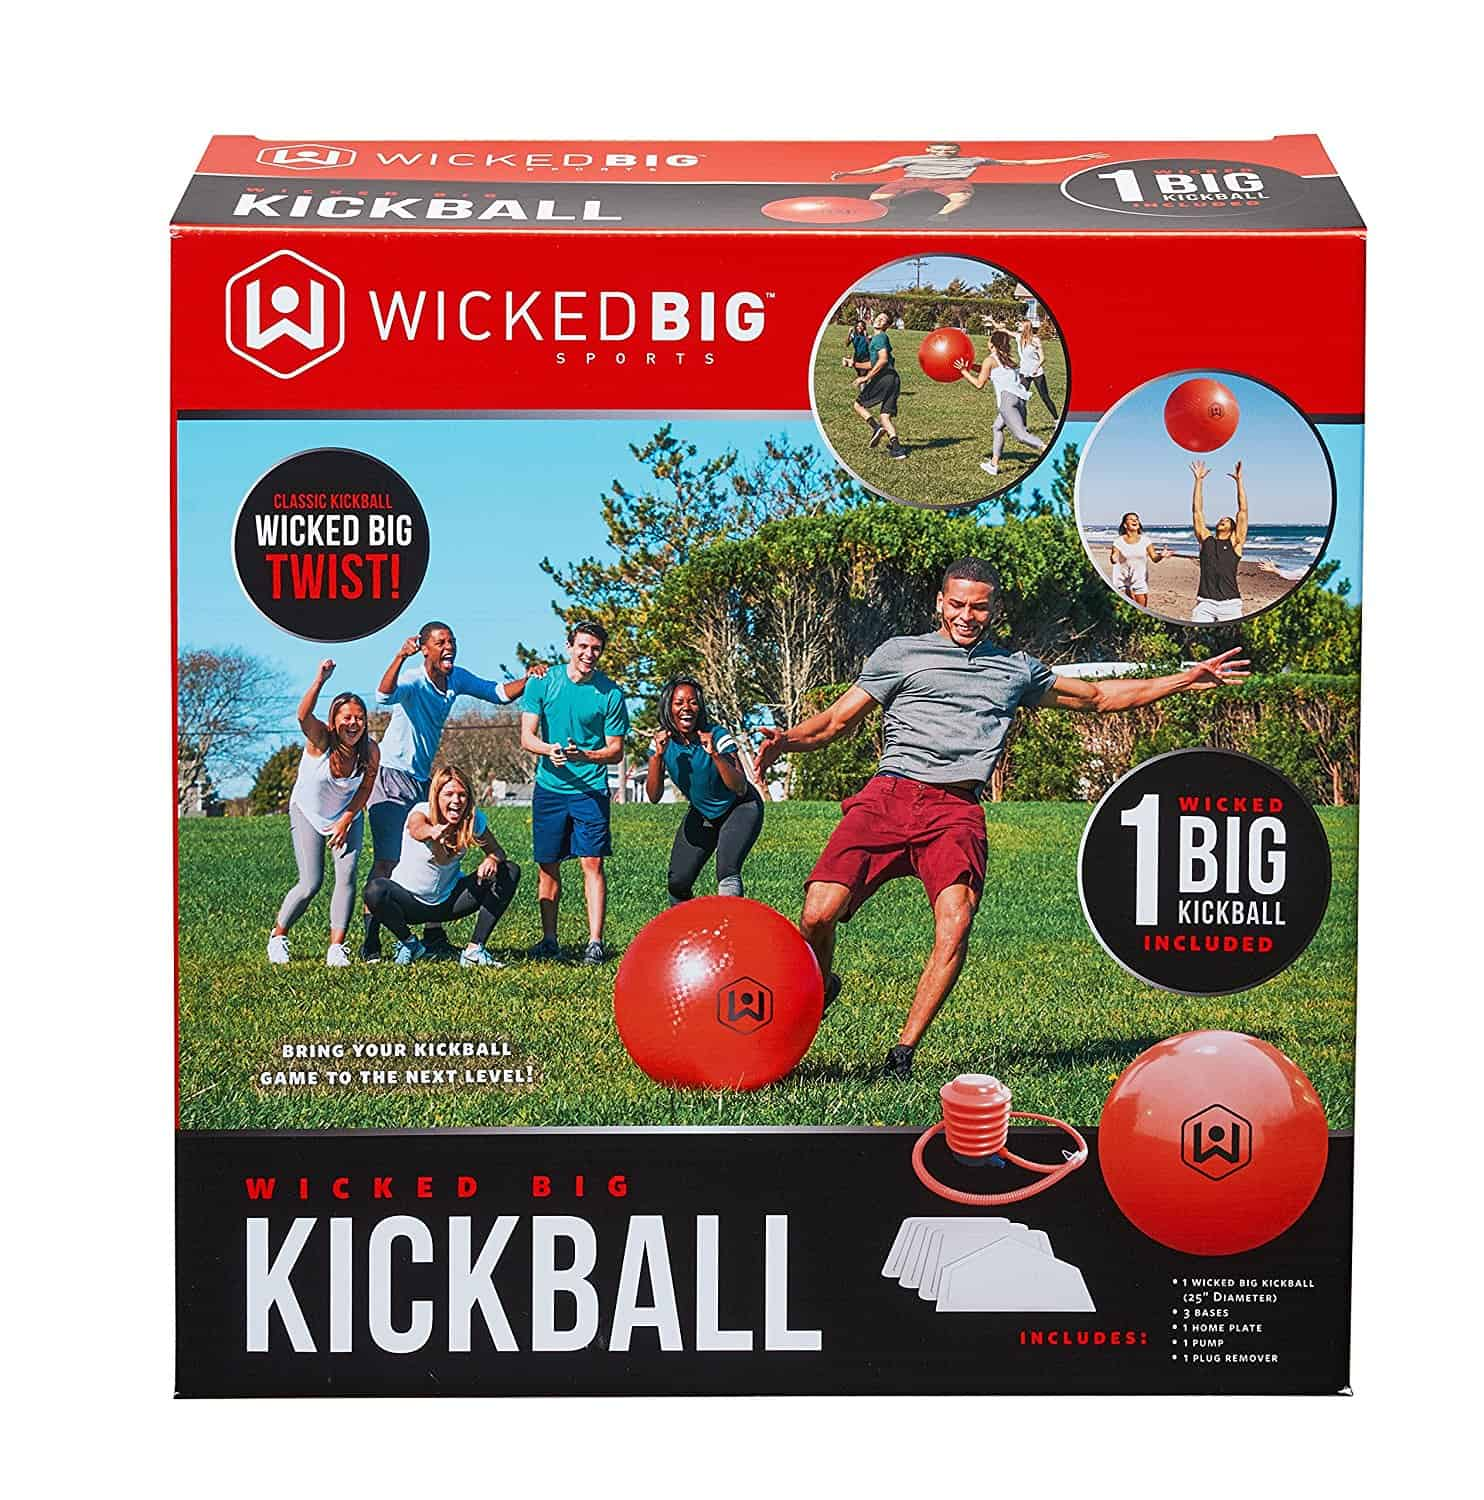 This Wicked Big Kickball game is tons of fun at a backyard BBQ or summer party. Kids and adults will love playing it.